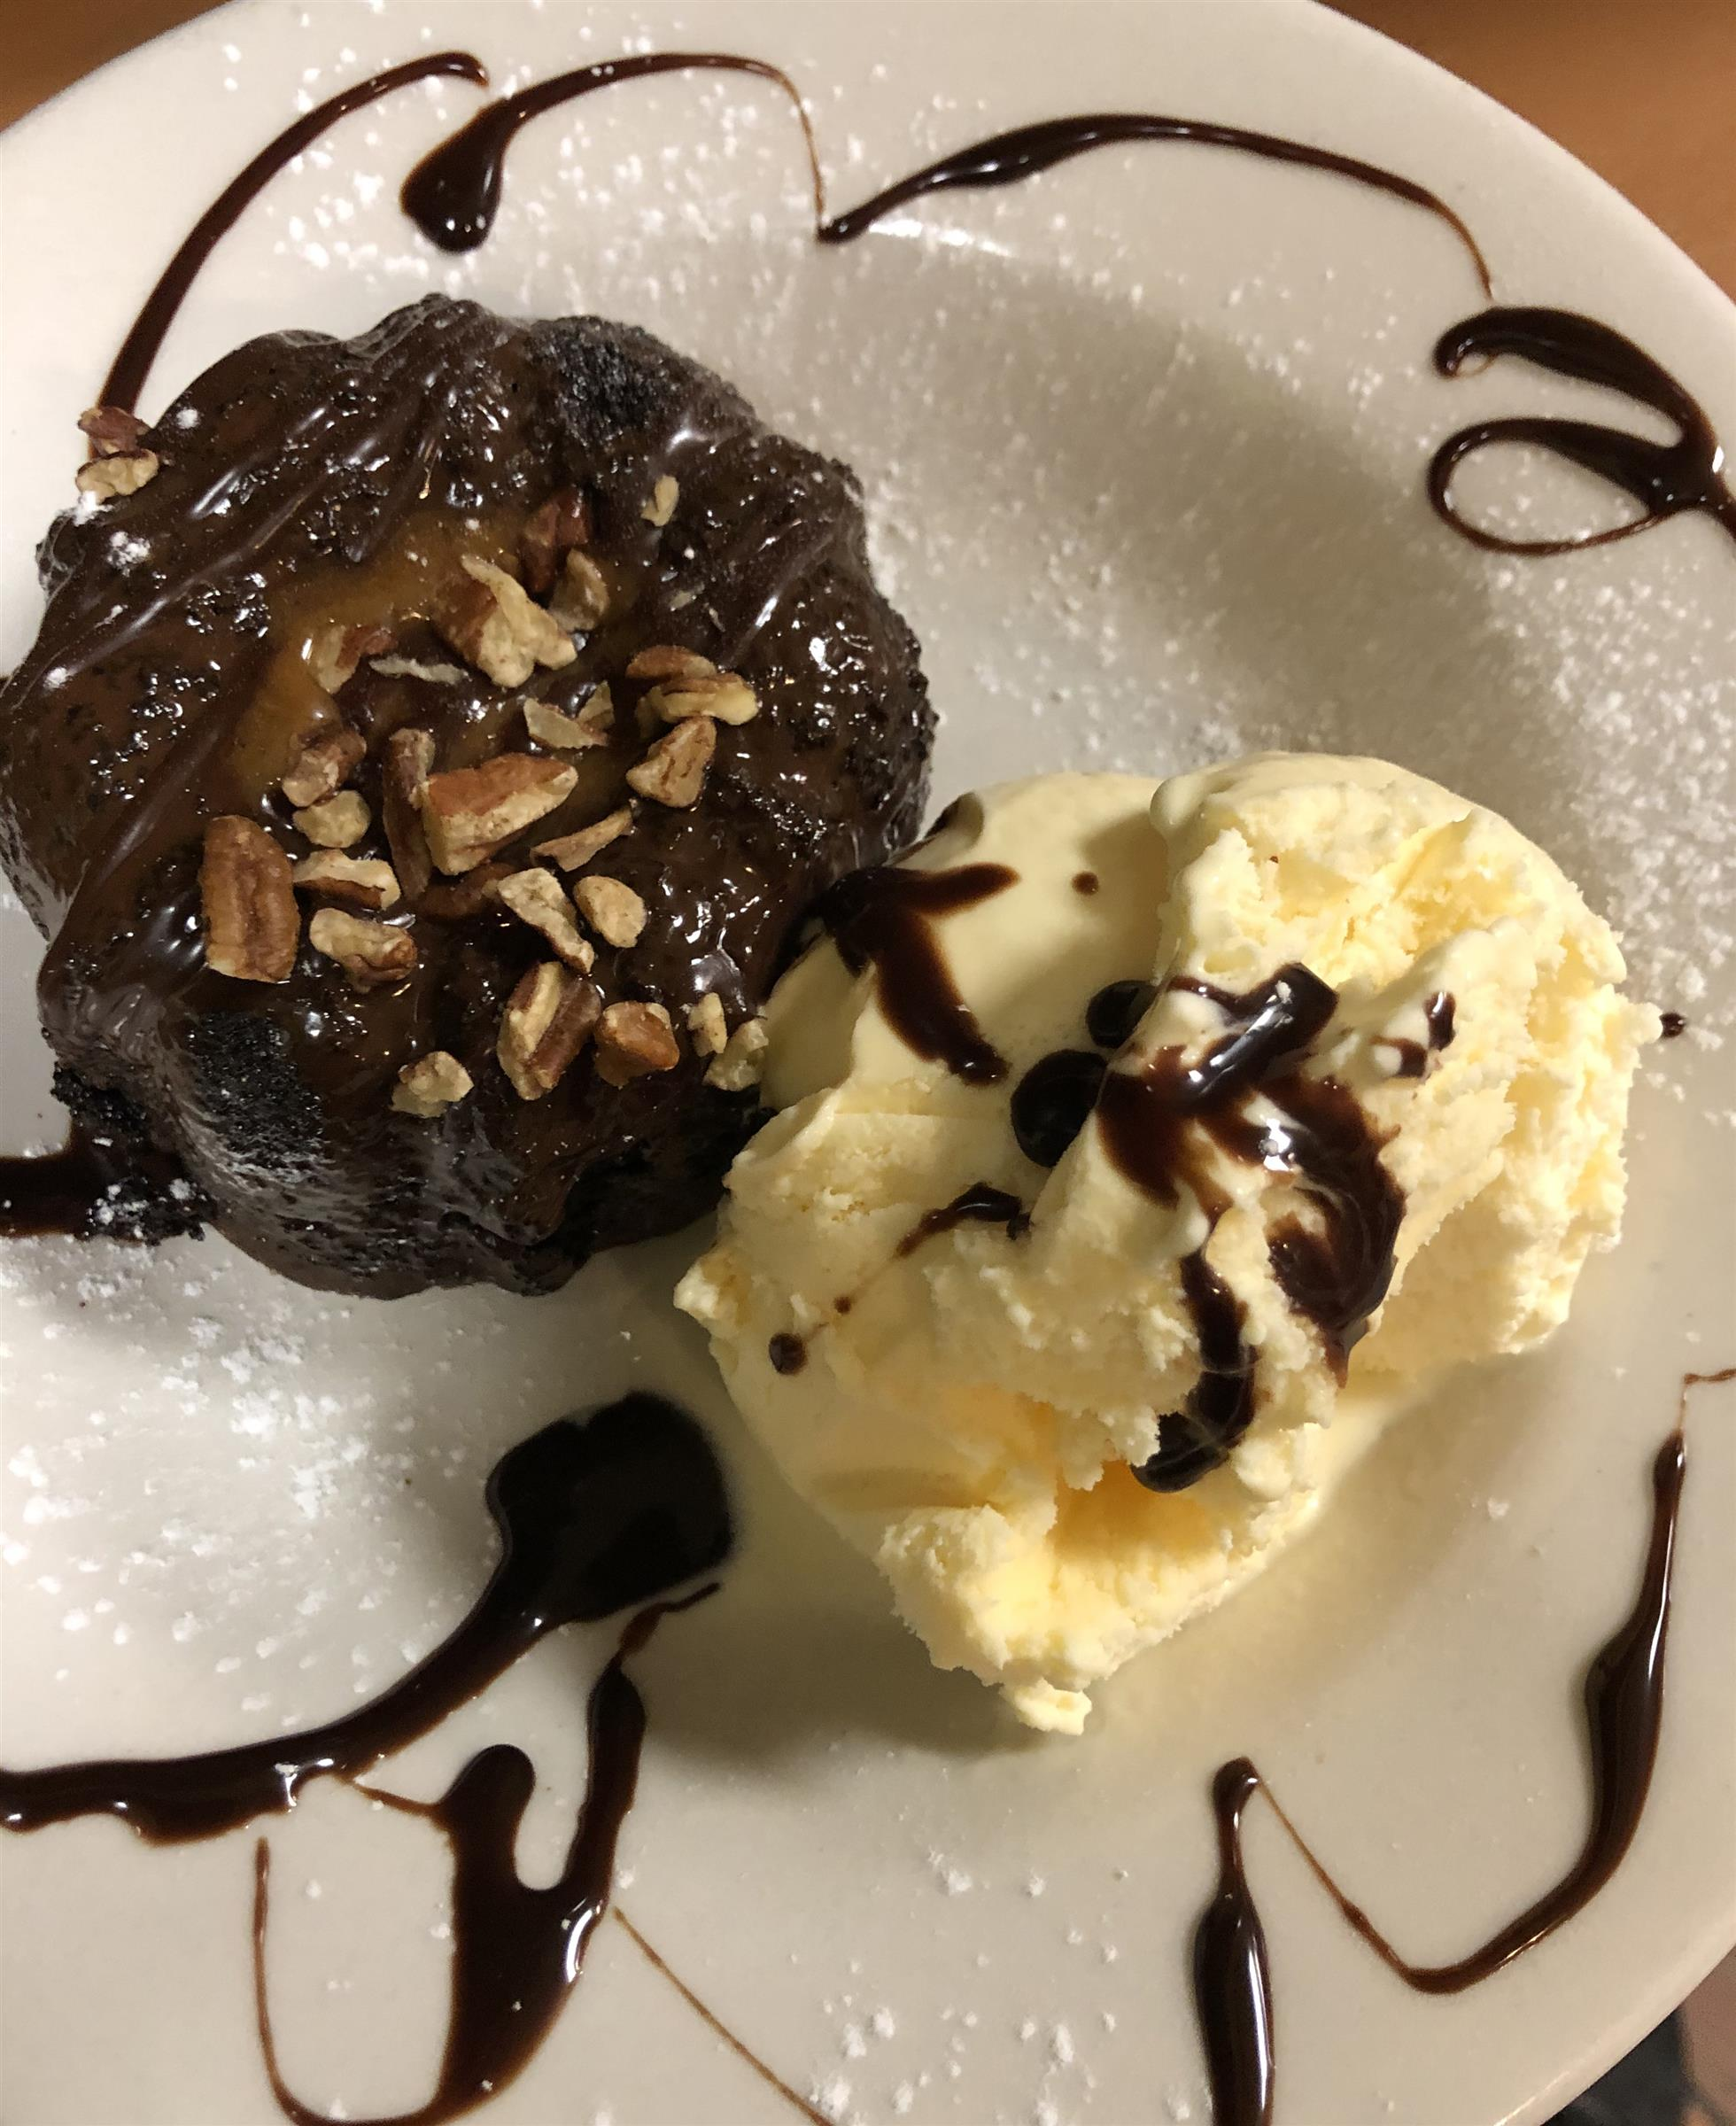 chocolate cake topped with nuts and a scoop of vanilla ice cream topped with chocolate syrup